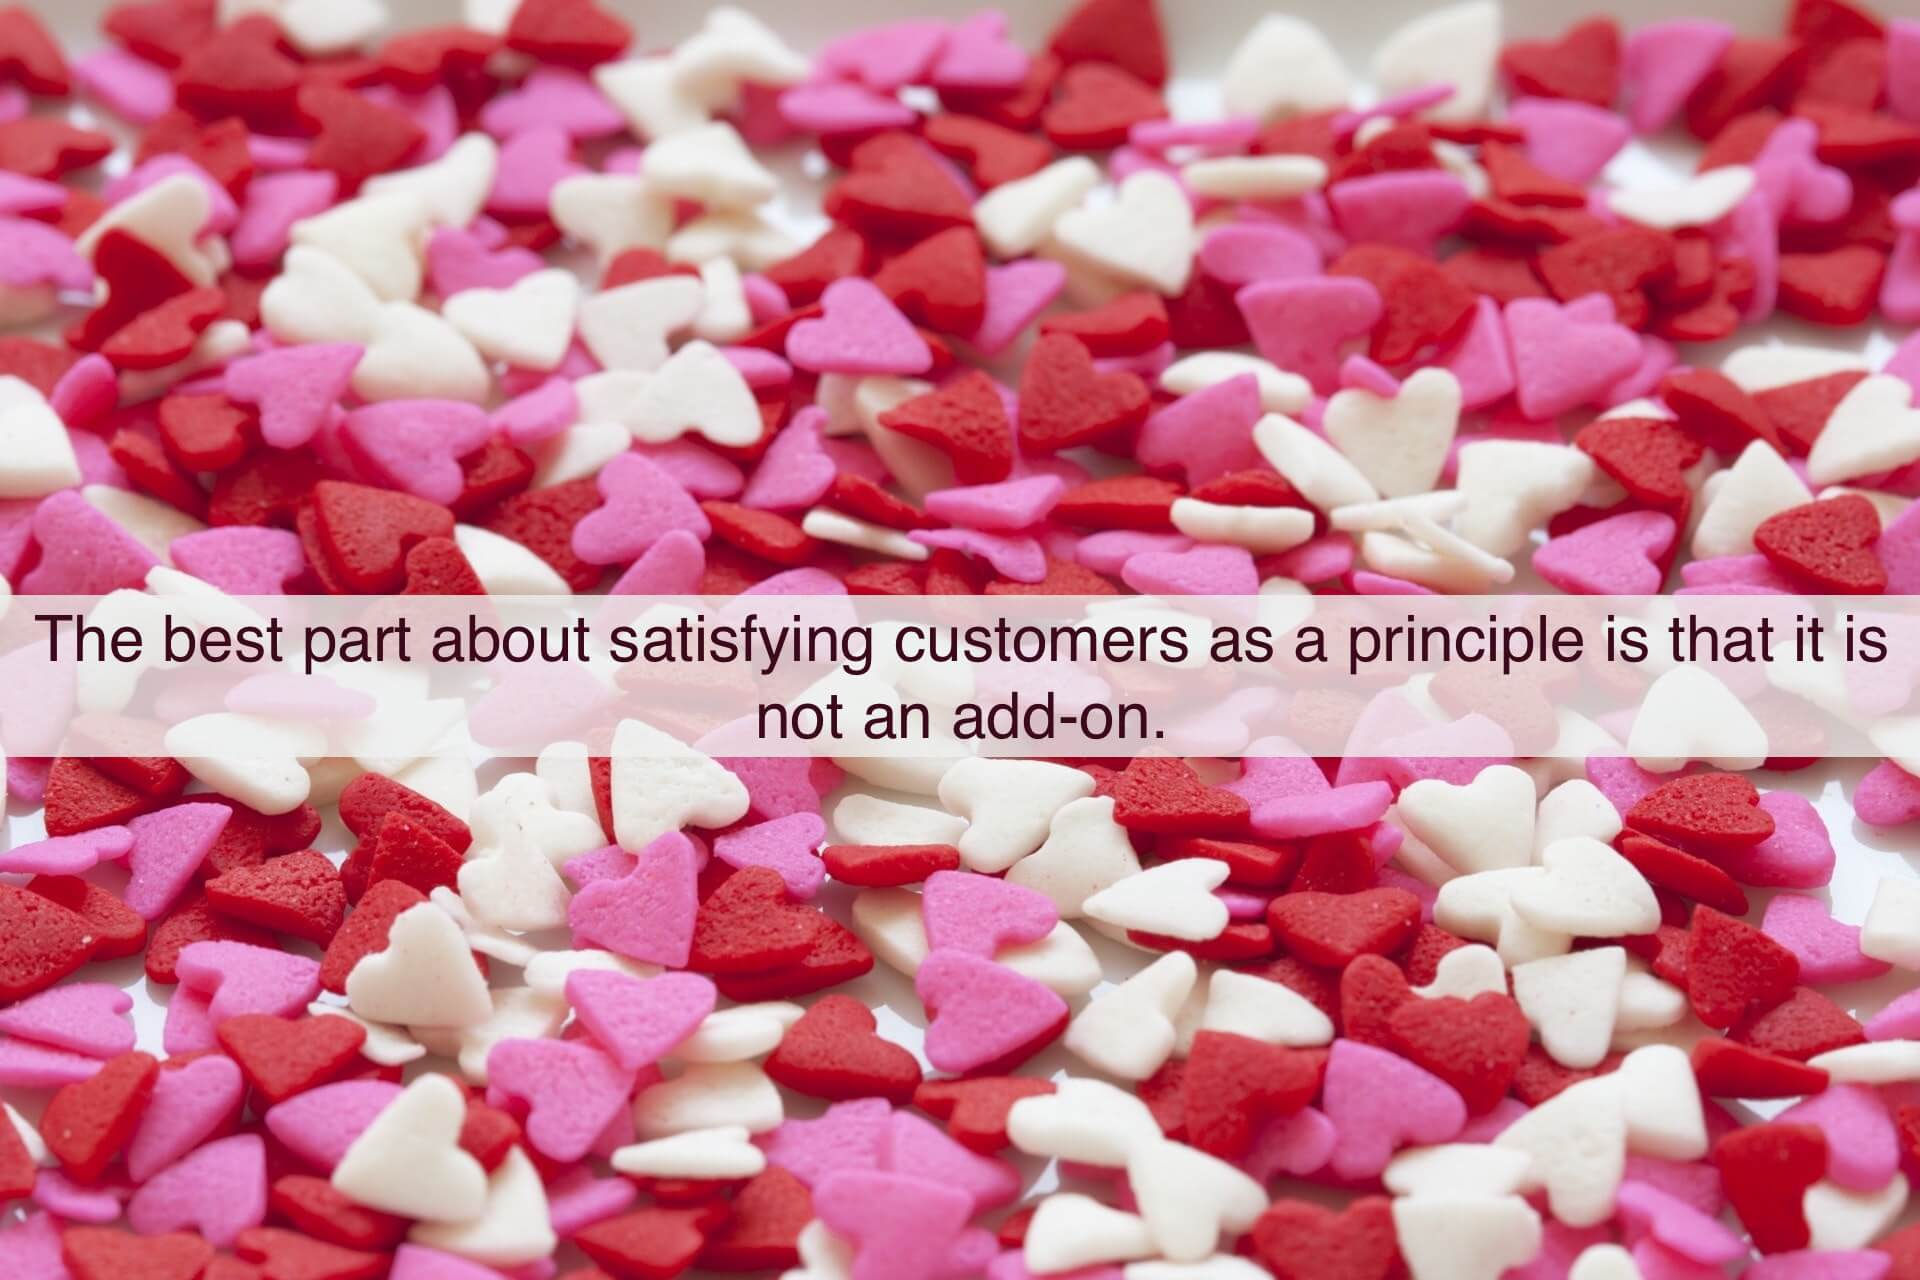 The best part about satisfying customers as a principle is that it is not an add-on, it is a must without which your business will collapse.